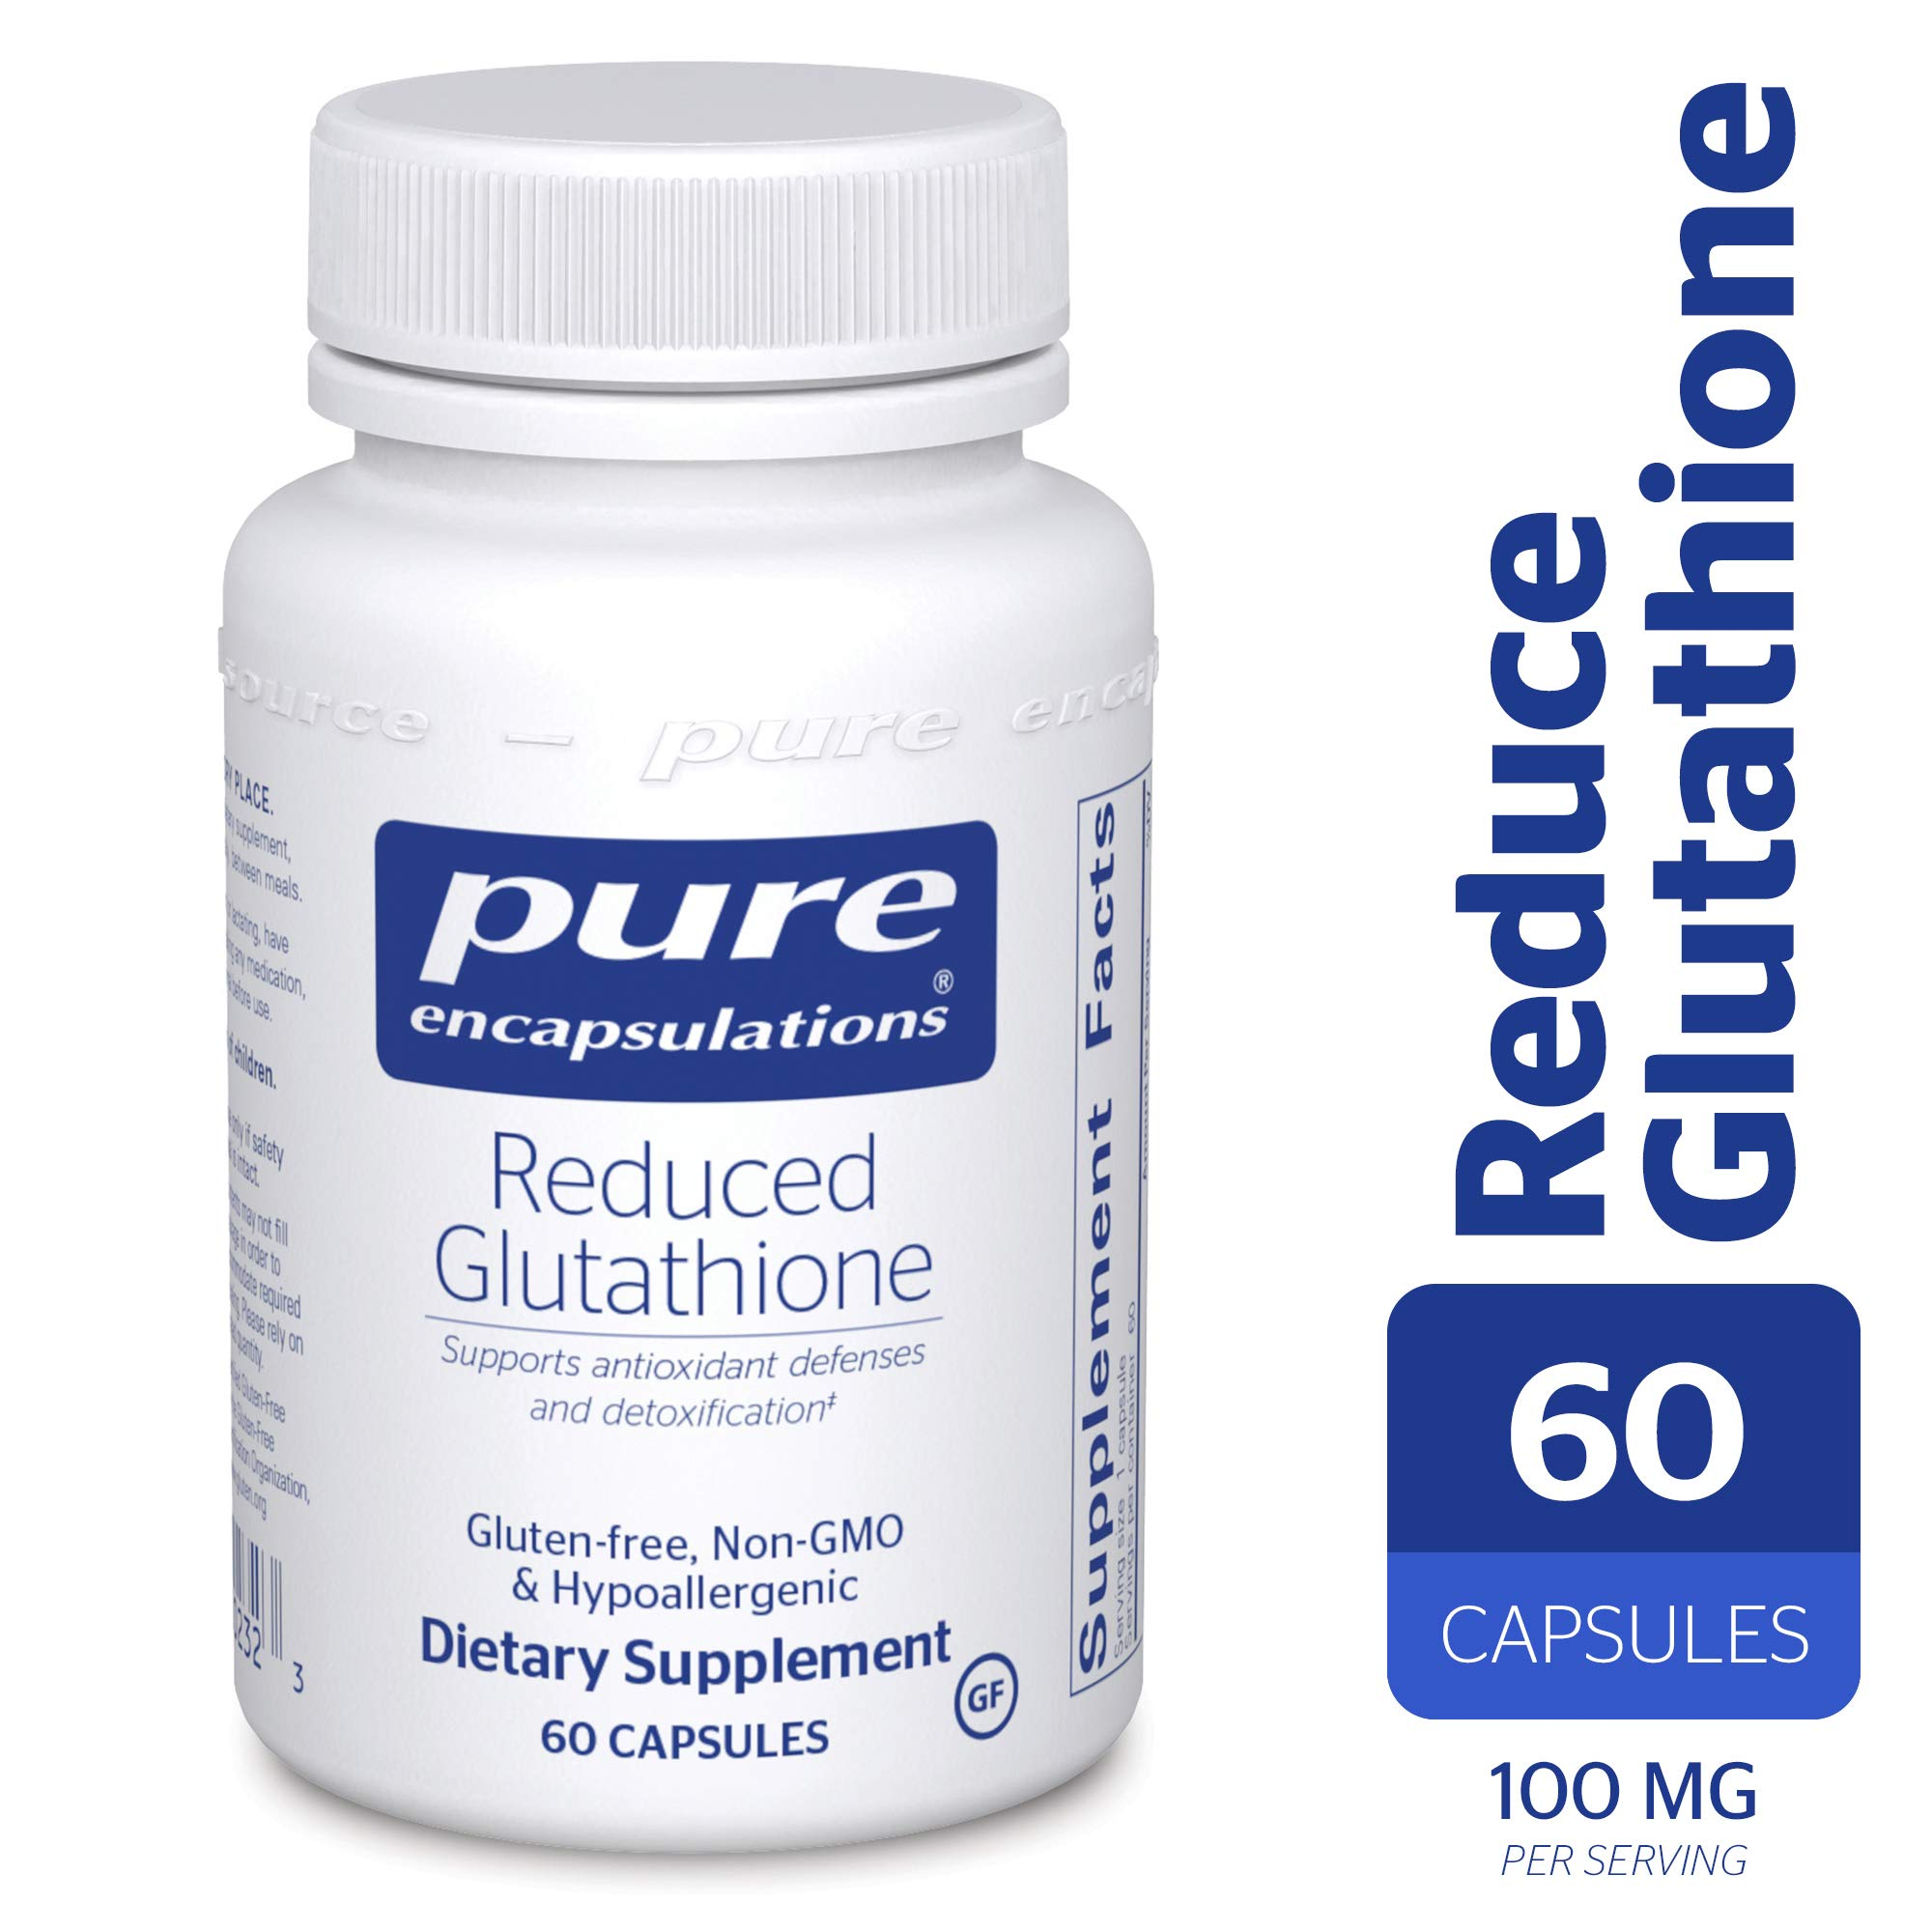 Pure Encapsulations - Reduced Glutathione - Hypoallergenic Antioxidant Supplement for Cell Health and Liver Function* - 60 Capsules